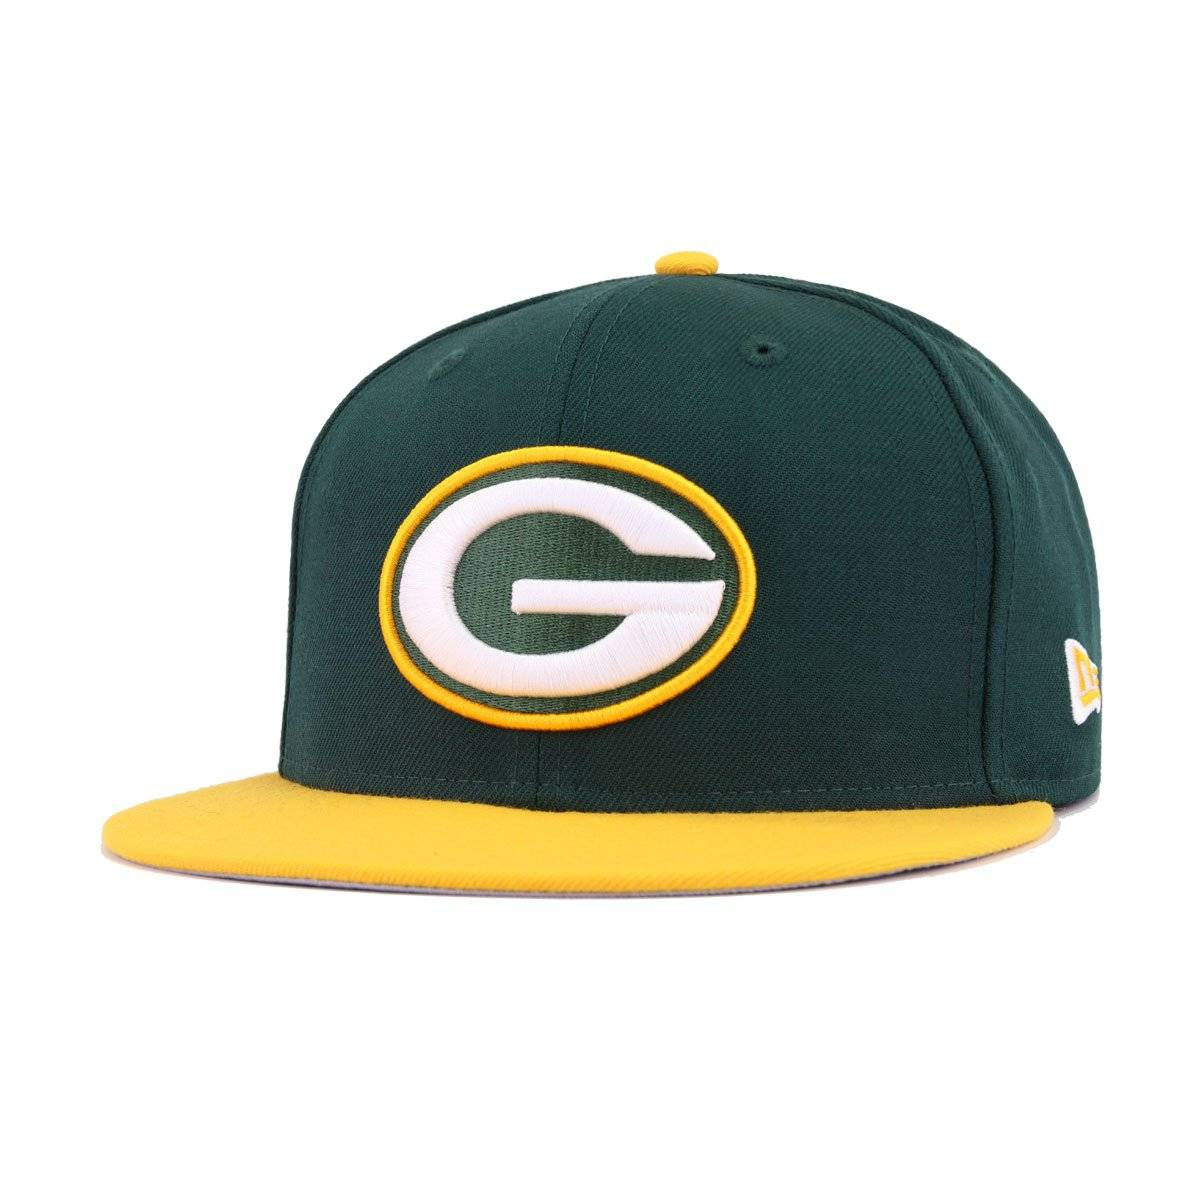 Green Bay Packers Dark Green A's Gold New Era 9Fifty Snapback